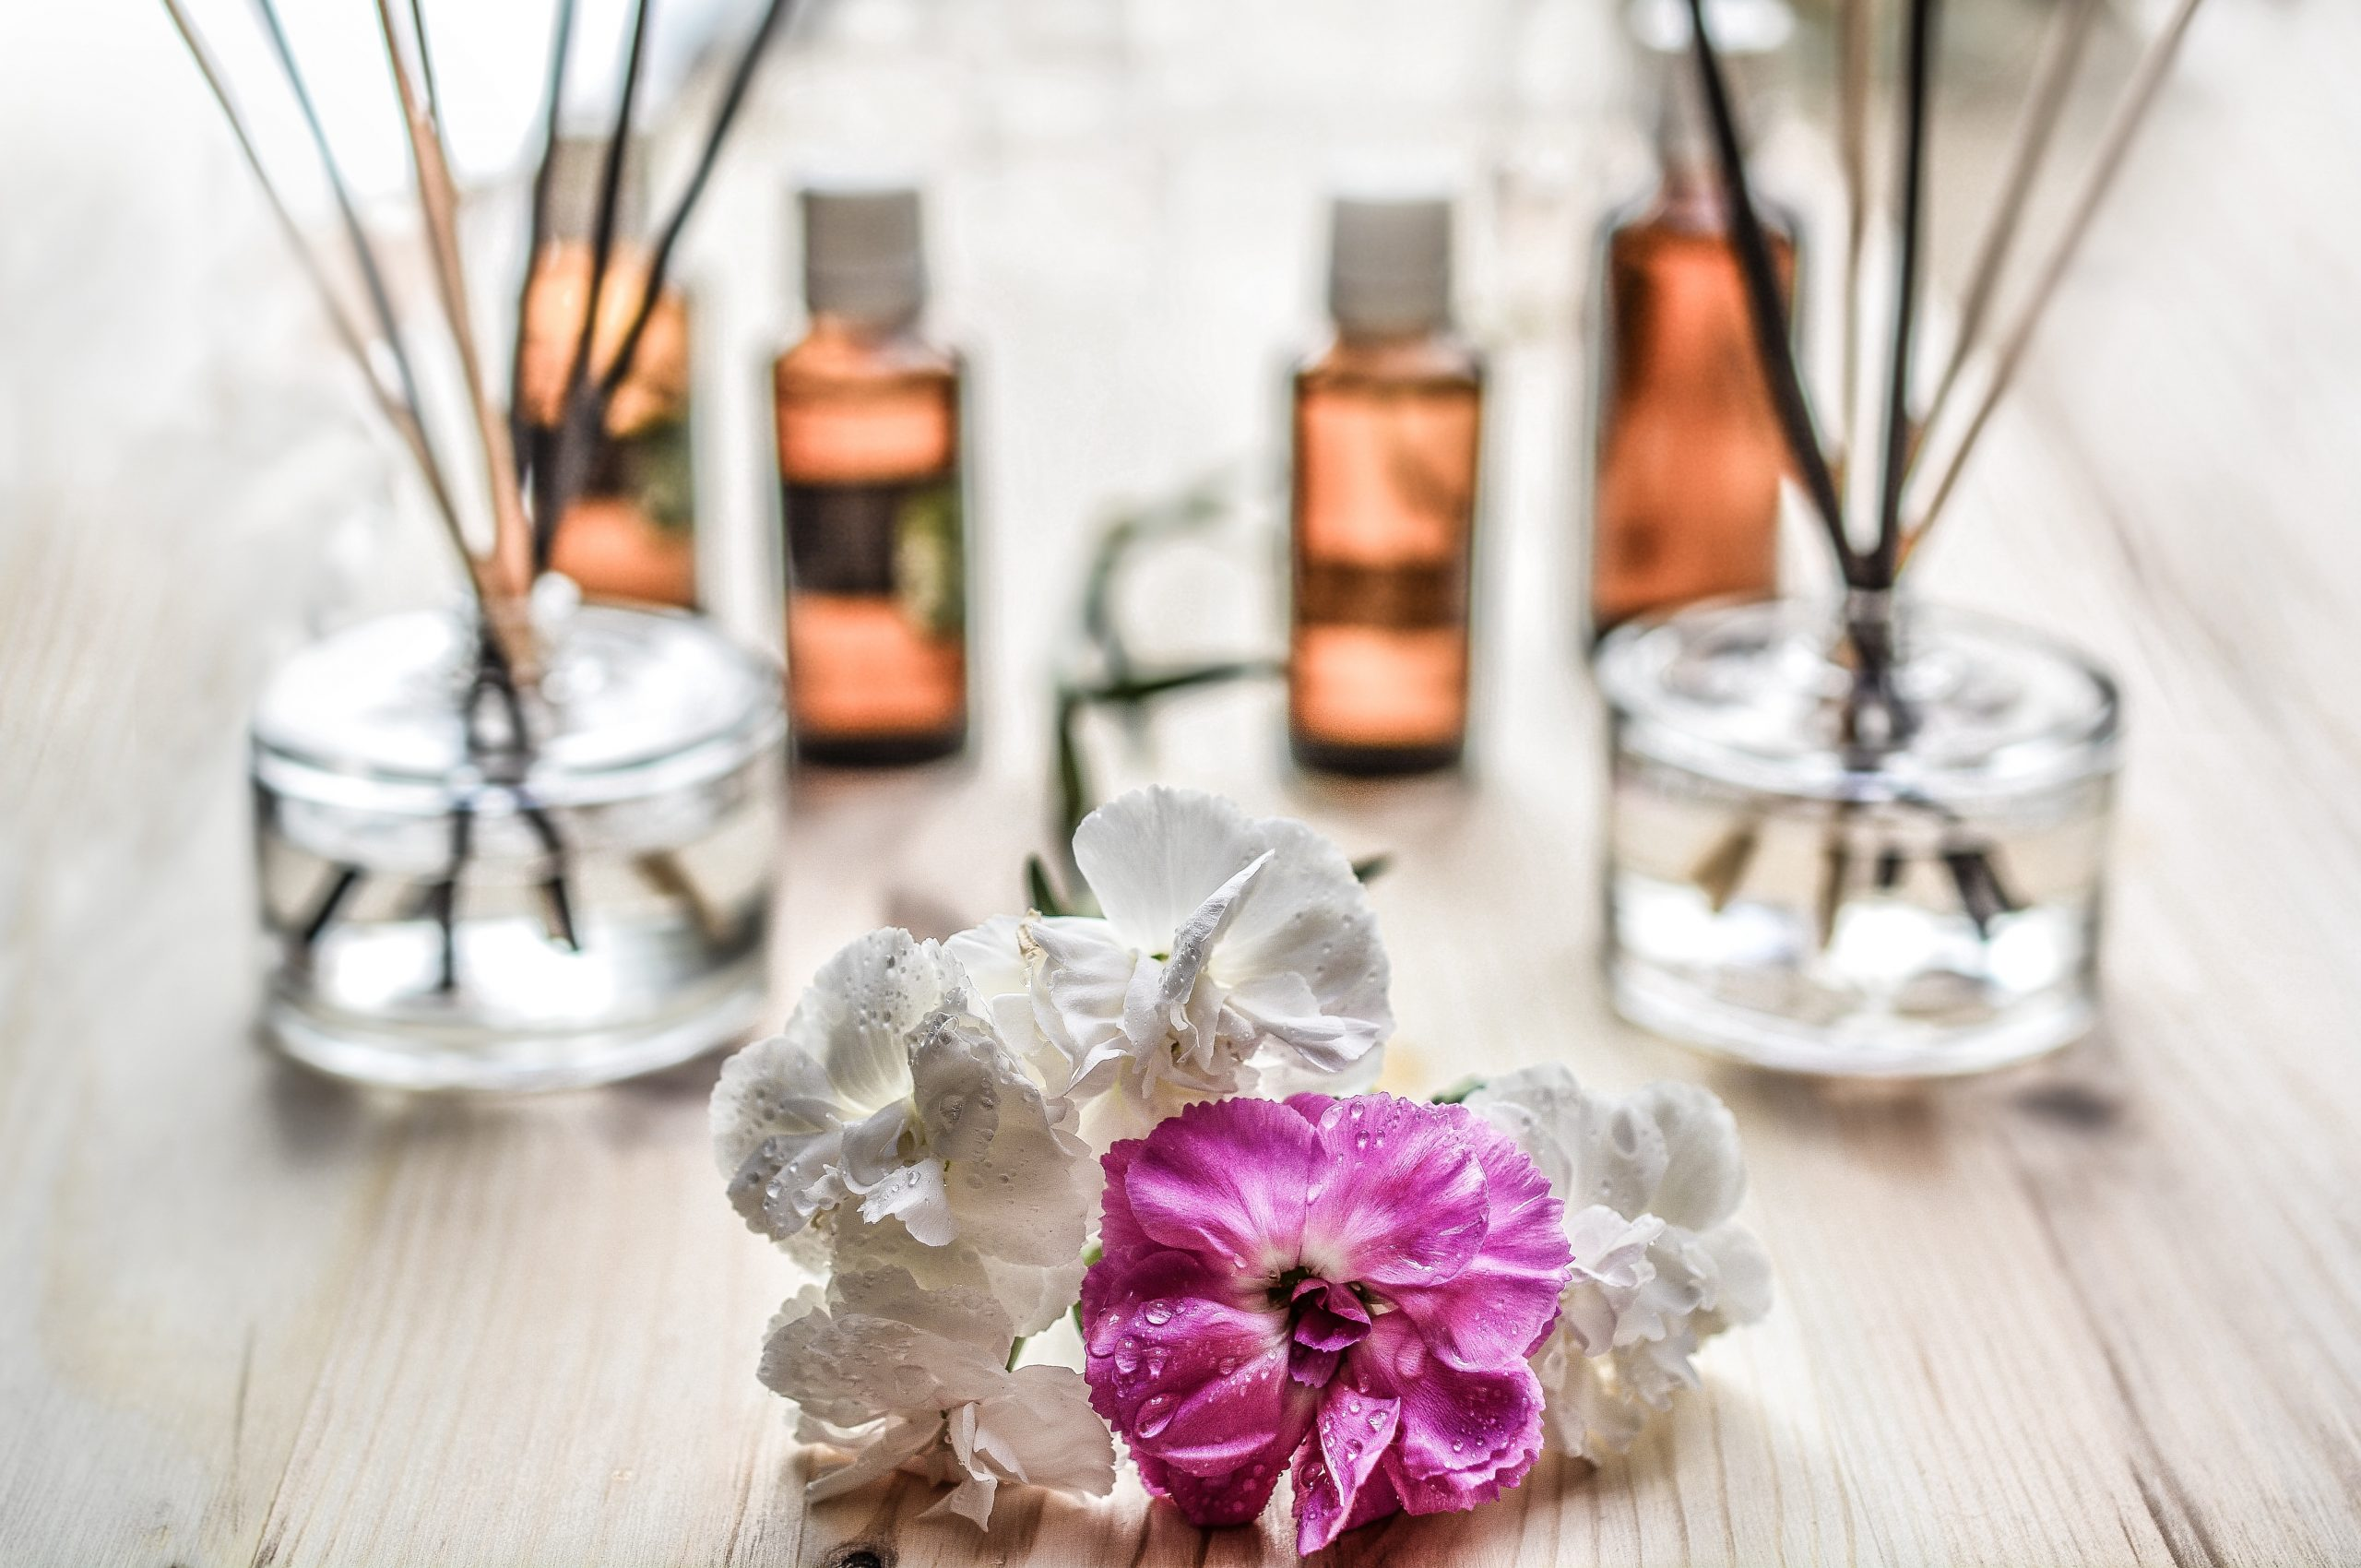 One purple and three white flowers on a light brown table with glass vases that have reed sticks in them and four bottles with essential oils